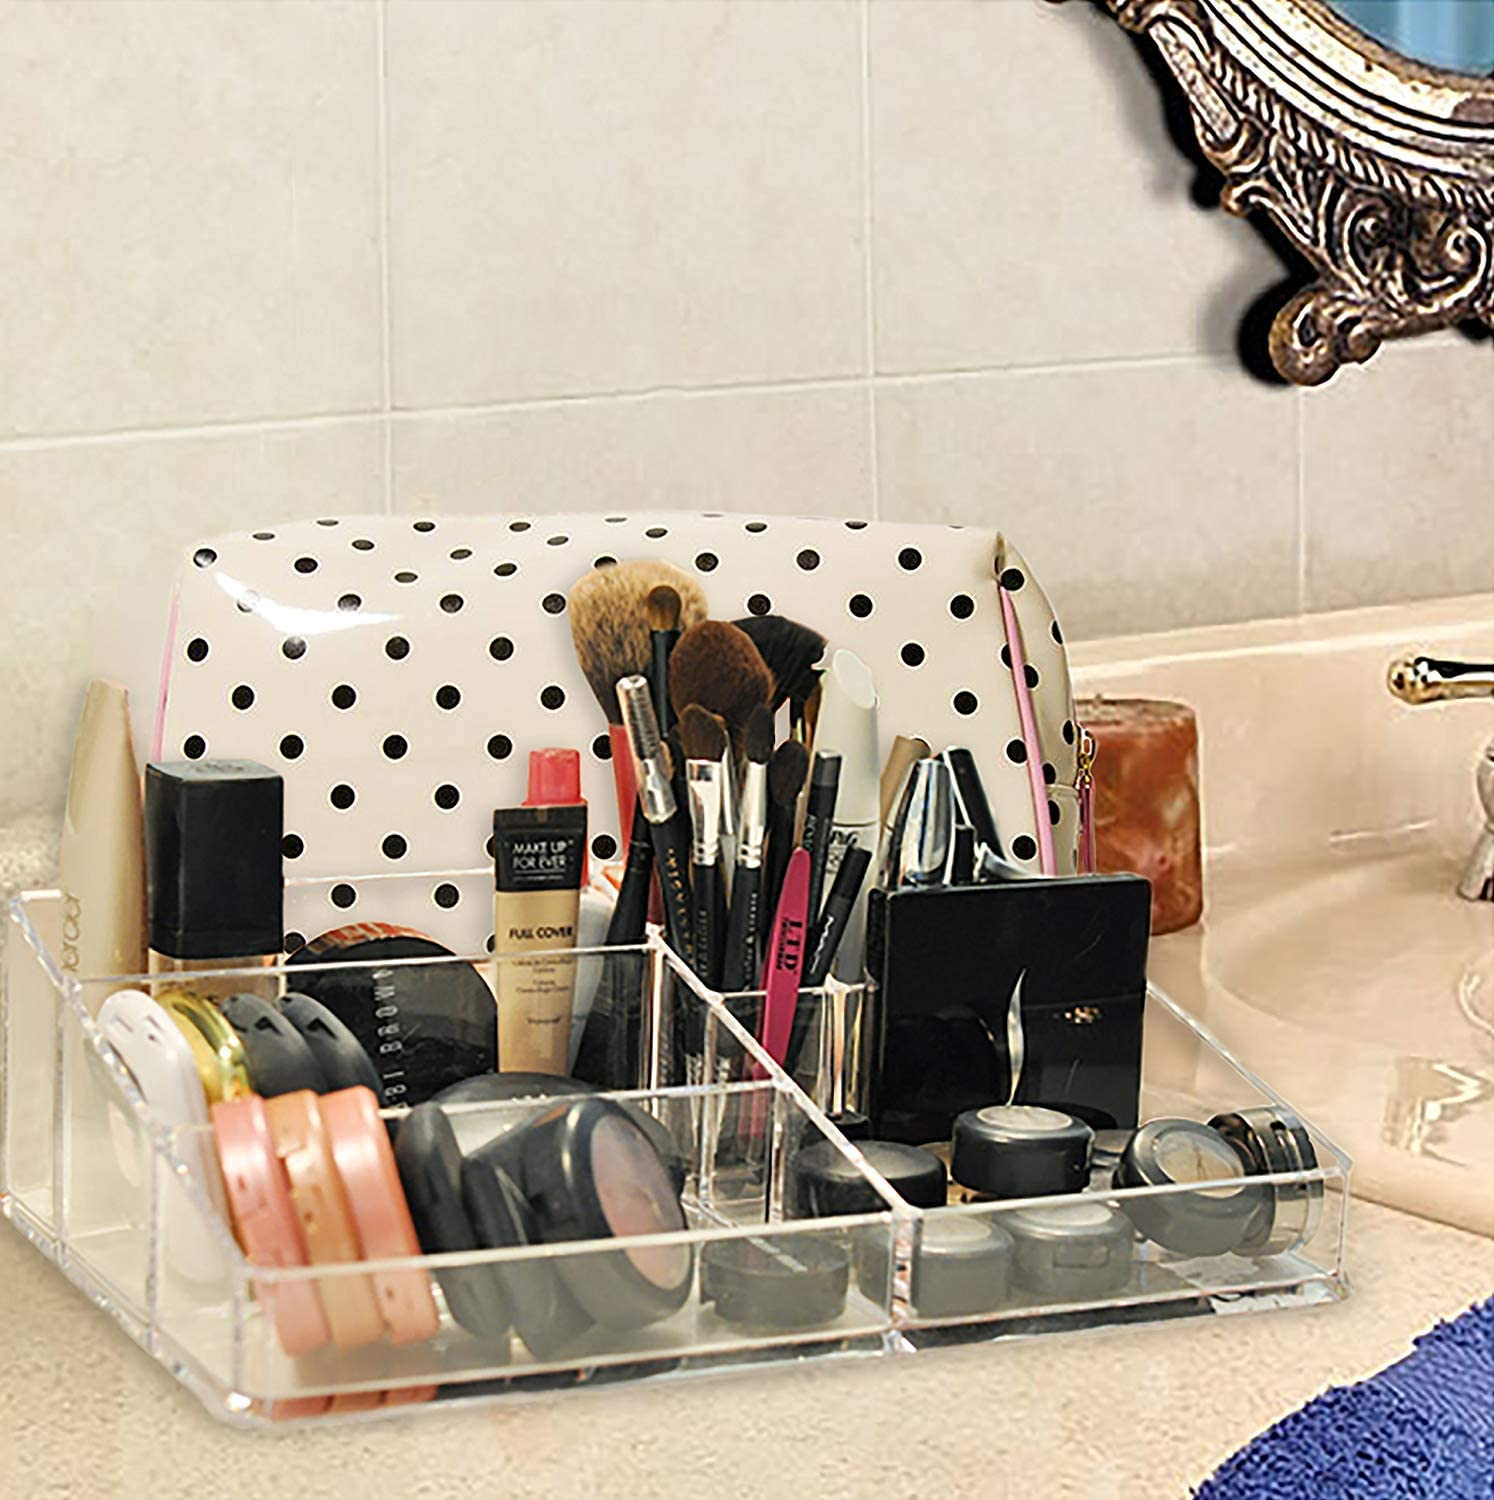 DH077 Decor Hut Acrylic Makeup Organizer Great for Supplies /& Brushes Keeps Everything Organized and Neat at Your Fingertips Easy to Clean Used by Professional Makeup Artist